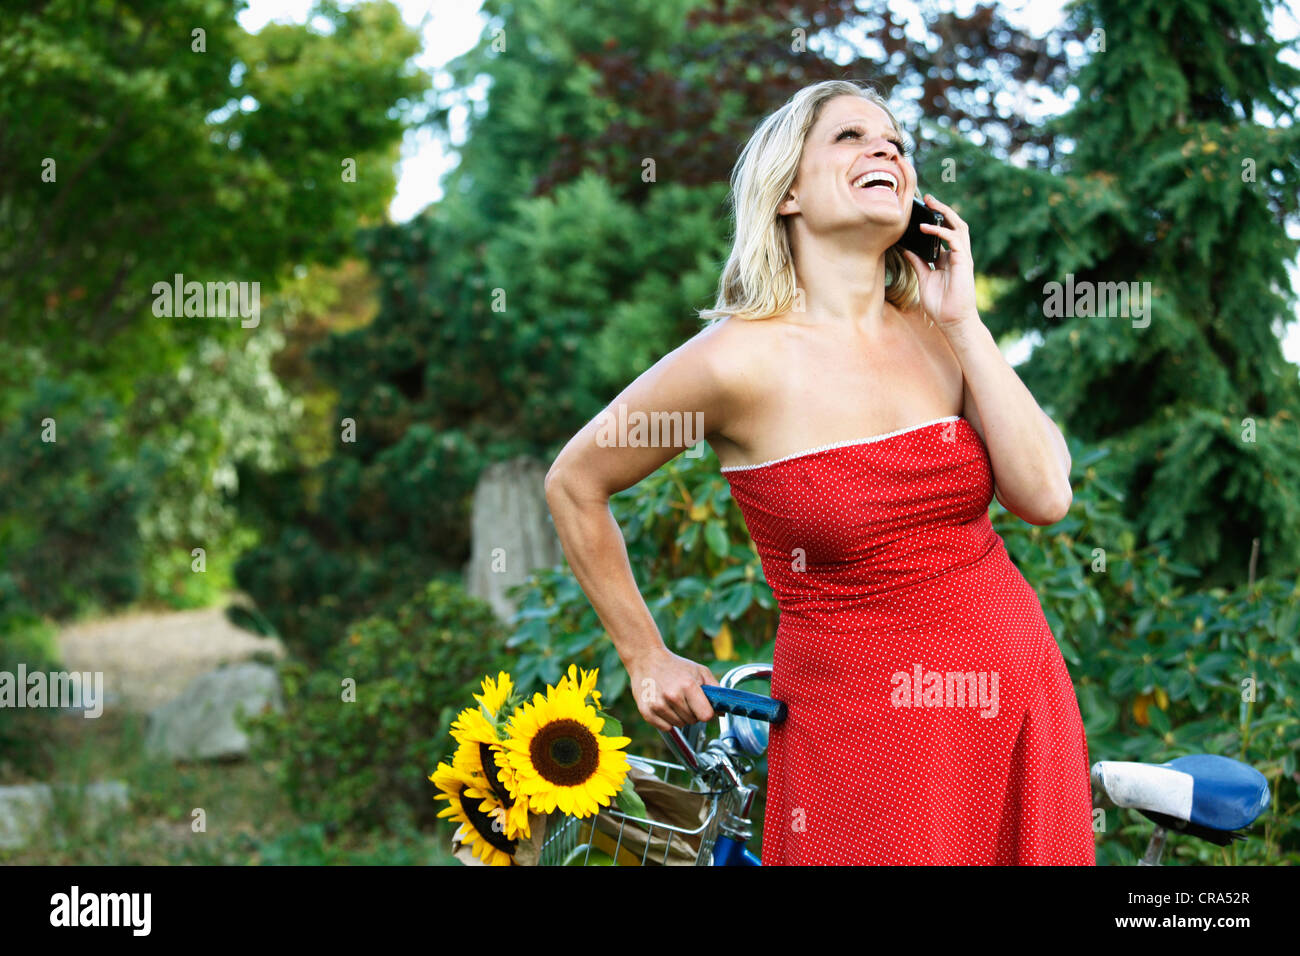 Woman talking on cell phone on bicycle - Stock Image